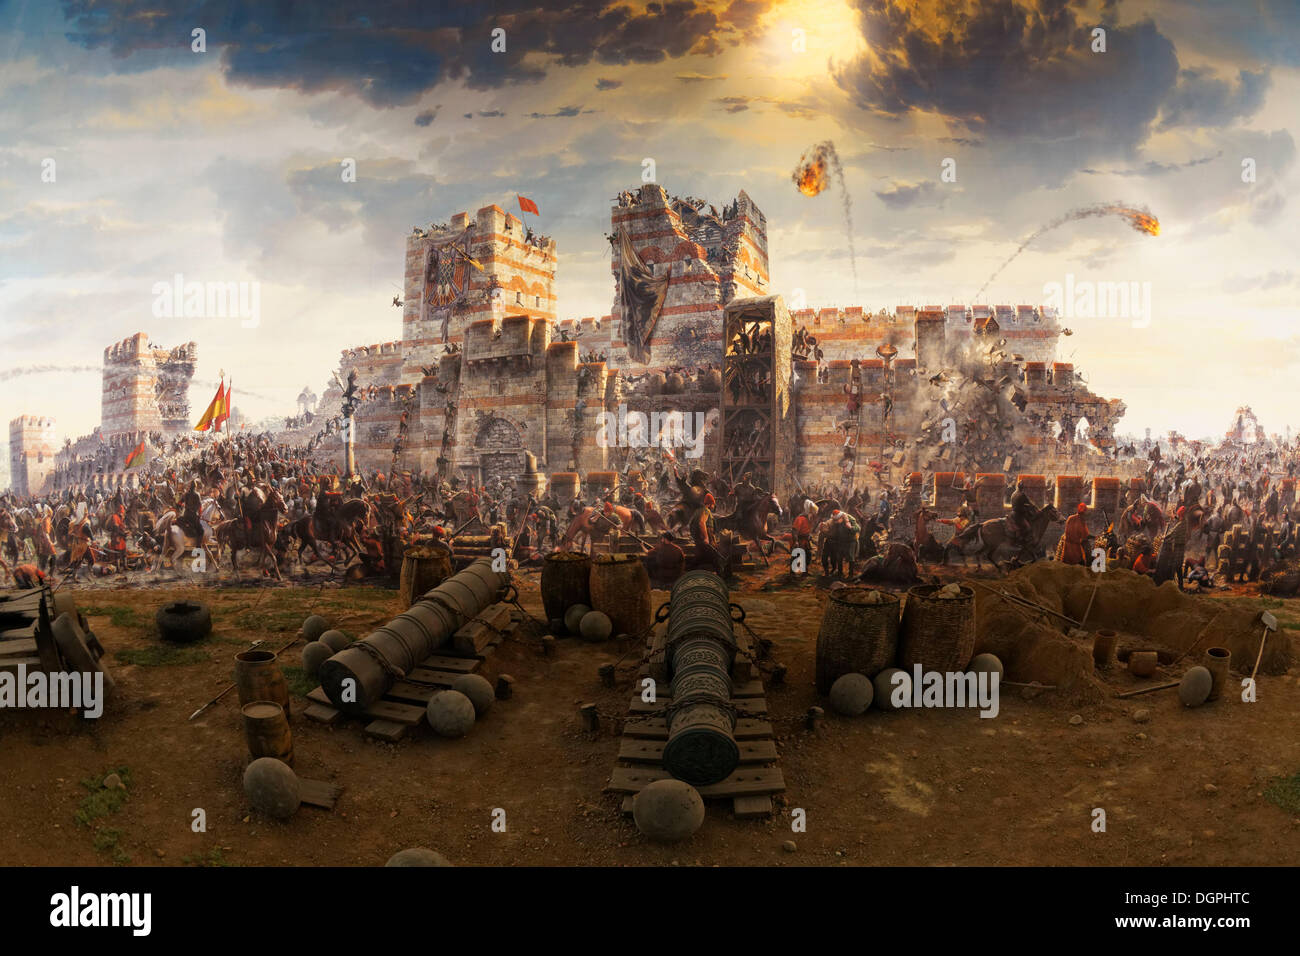 painting of the conquest of constantinople in 1453 by the ottomans stock photo 61962556 alamy